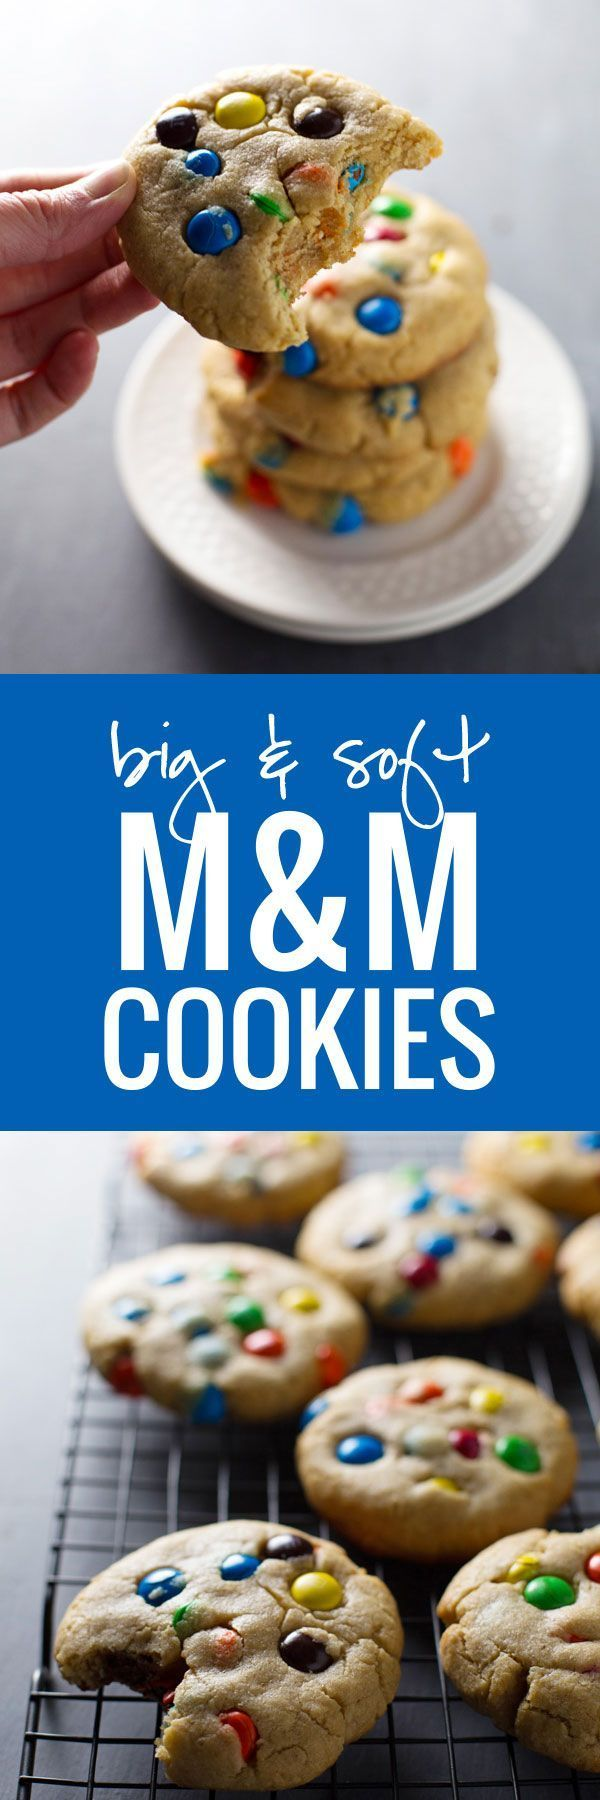 Like this?  Then you are going to love this http://bargainmums.com.au/mini-mm-cookies #dessert #recipe